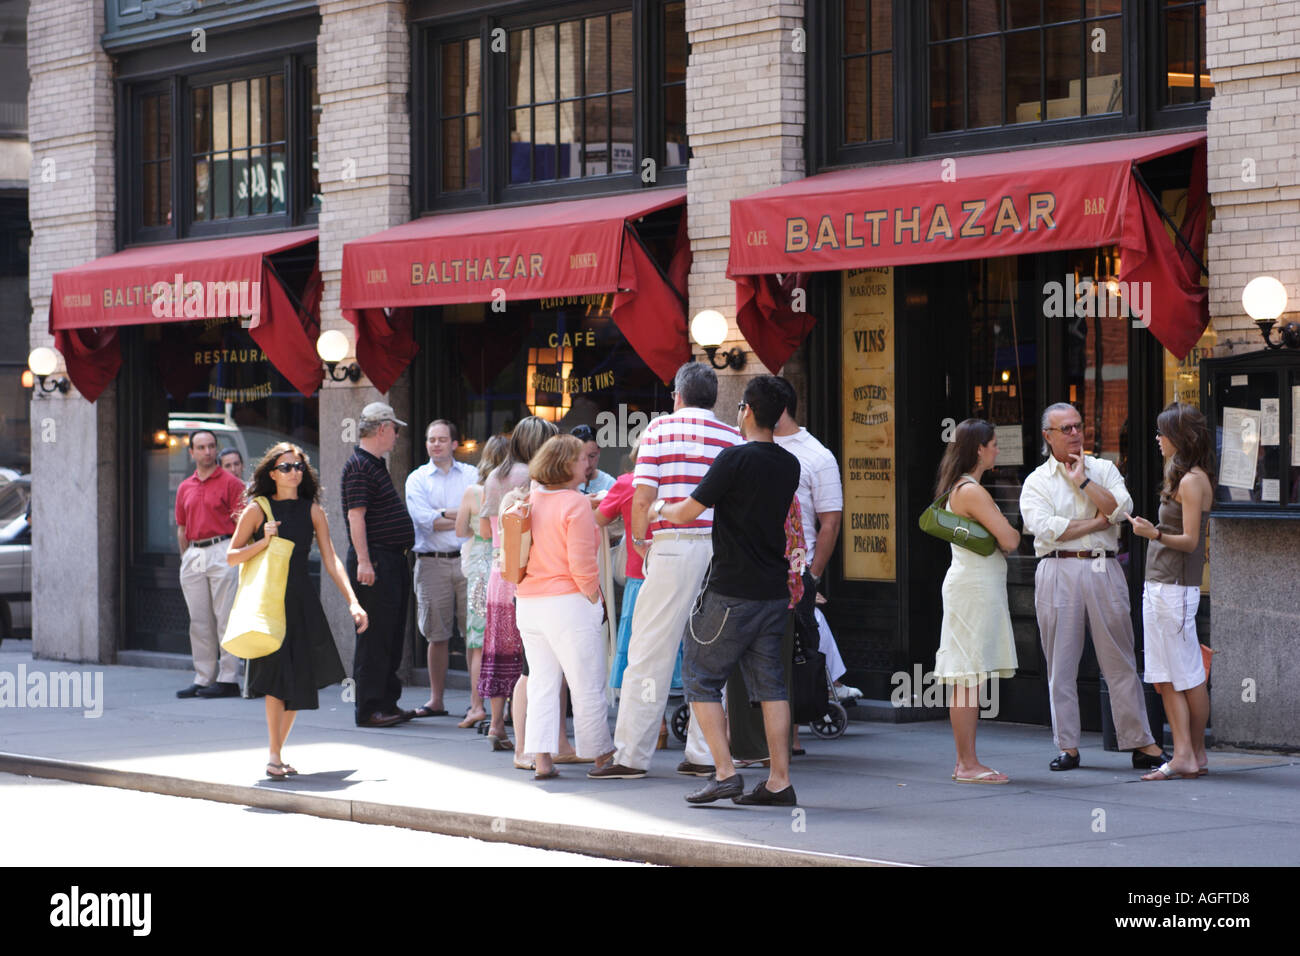 Balthazar Cafe New York